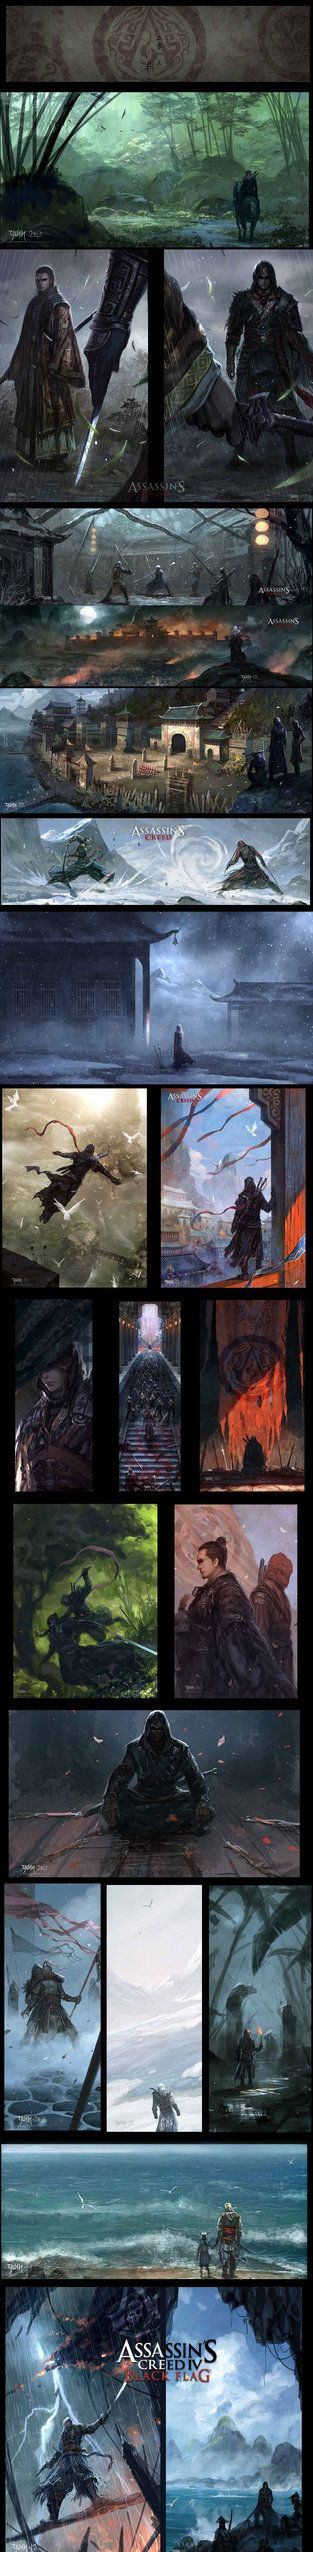 A series of full art of my work over Assassin's Creed fan art.